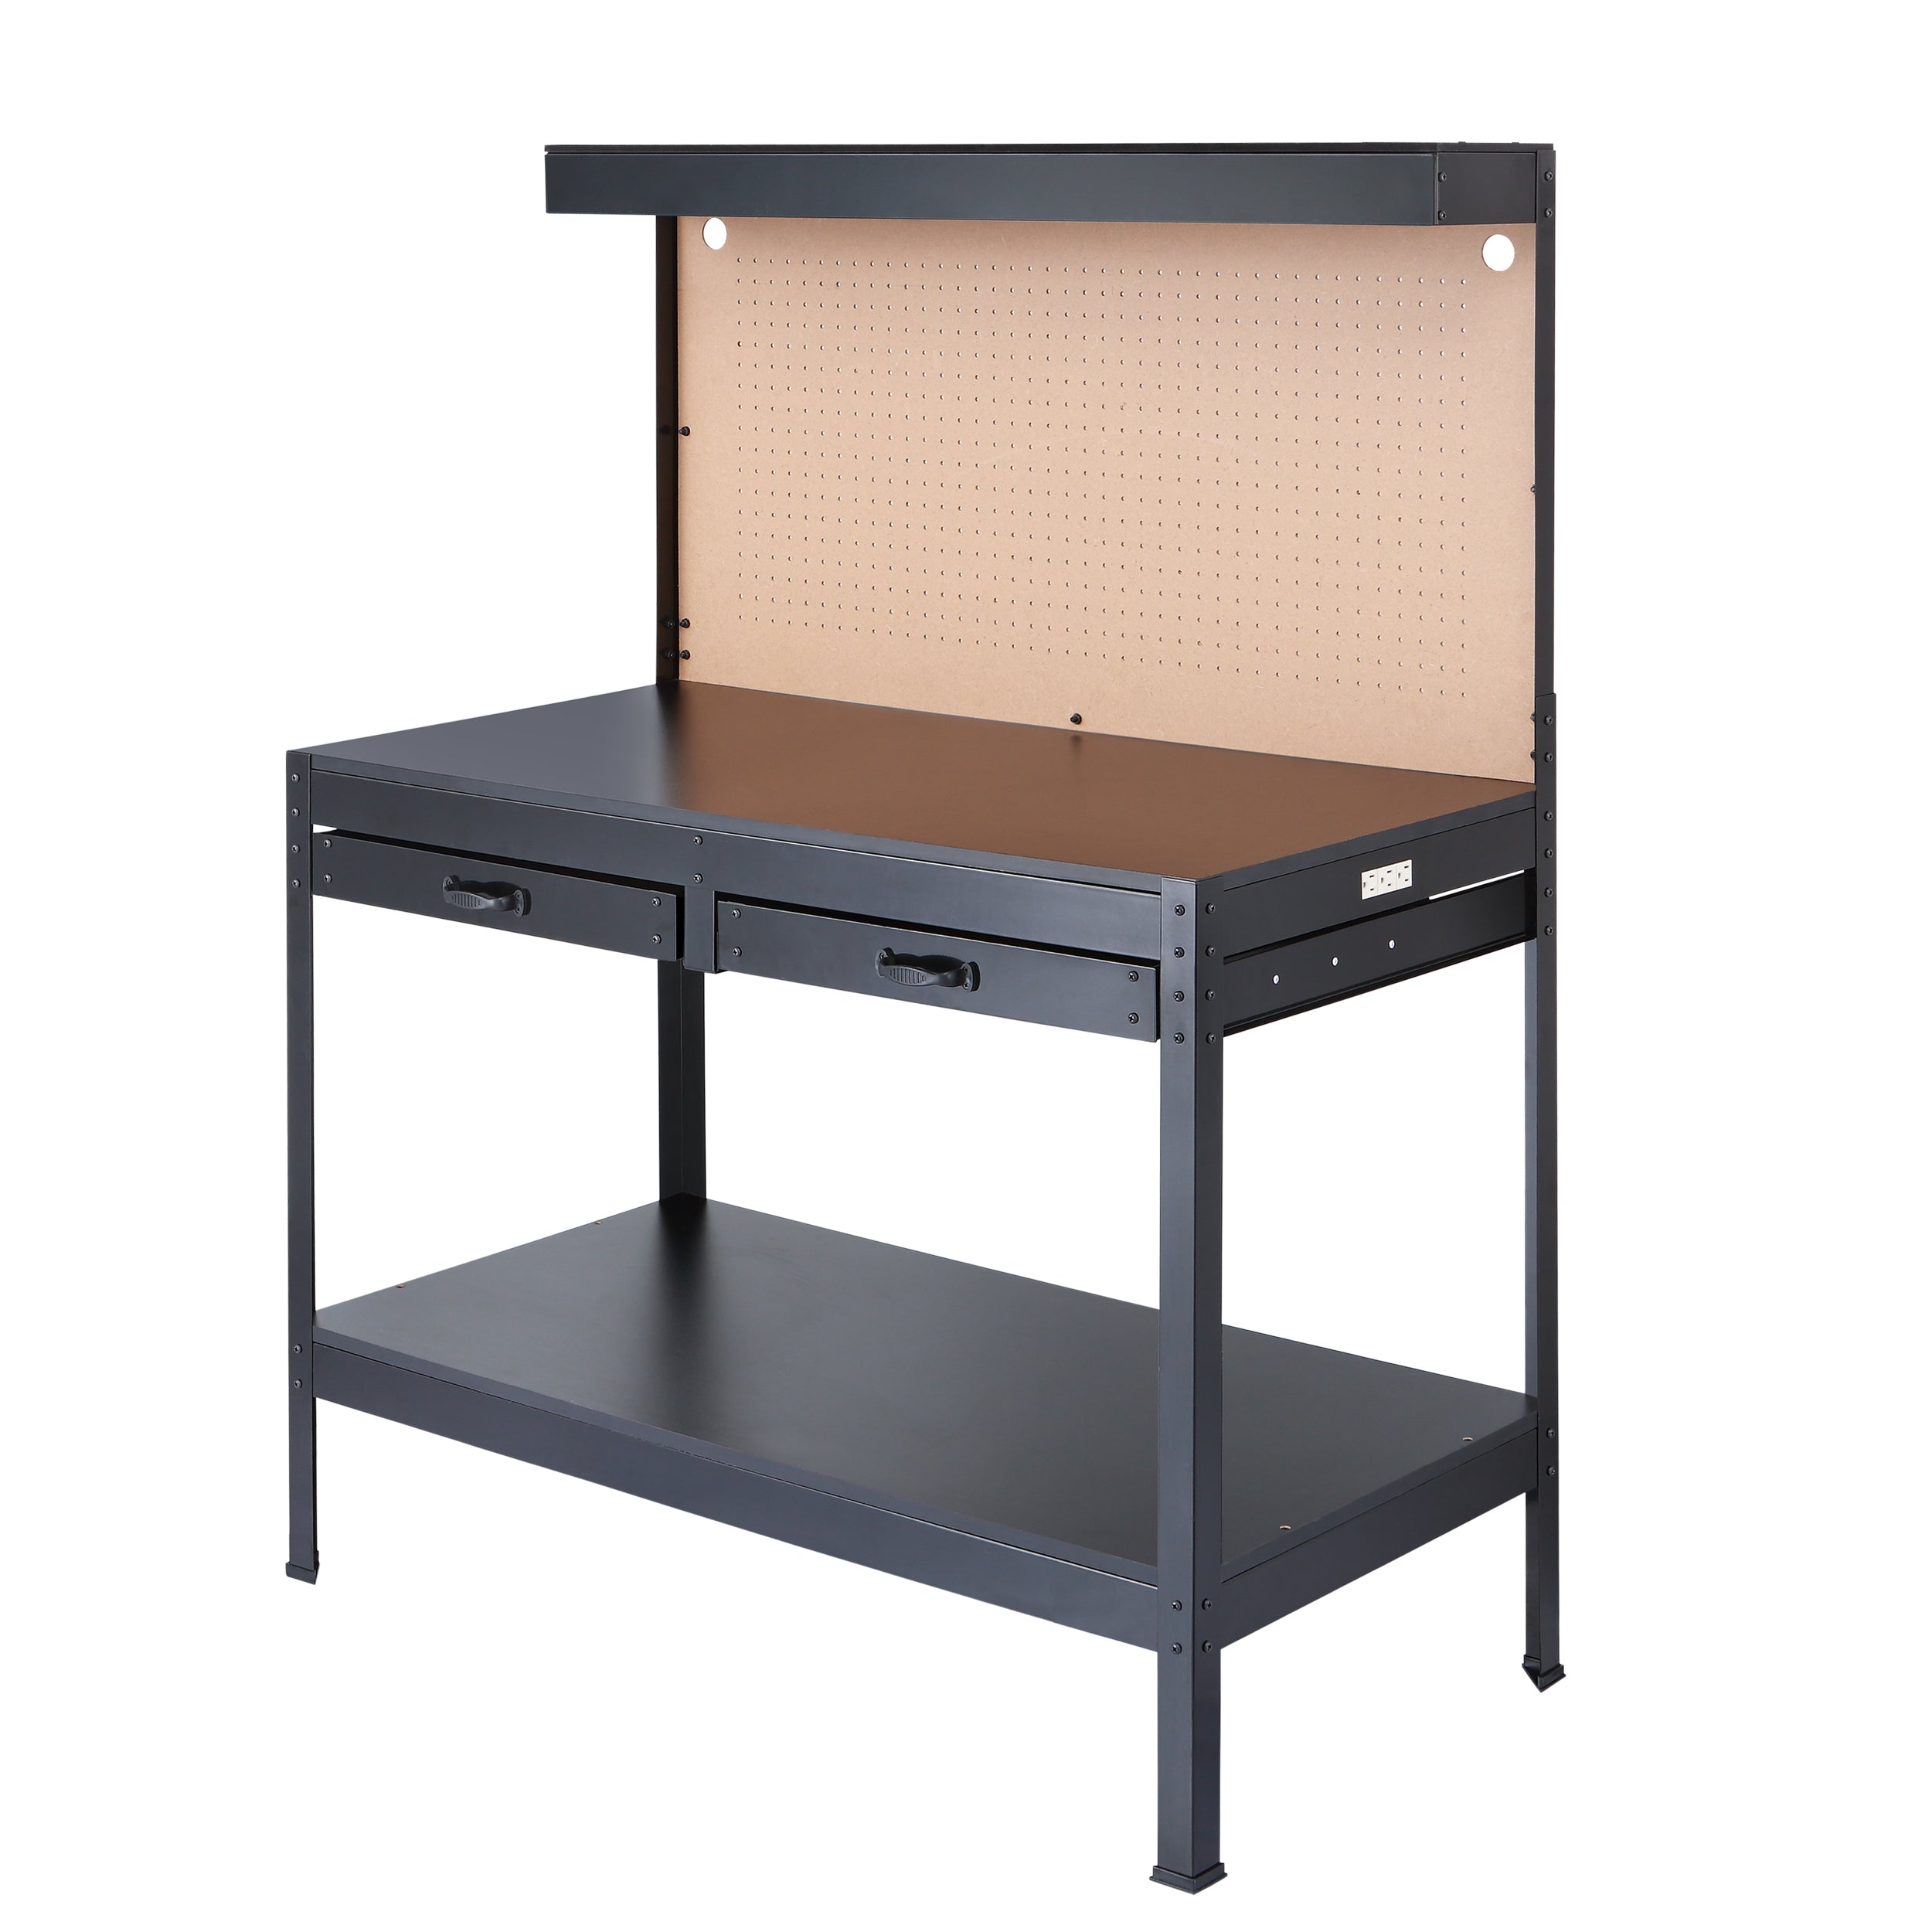 MULTIPURPOSE WORKBENCH WITH LIGHT 2